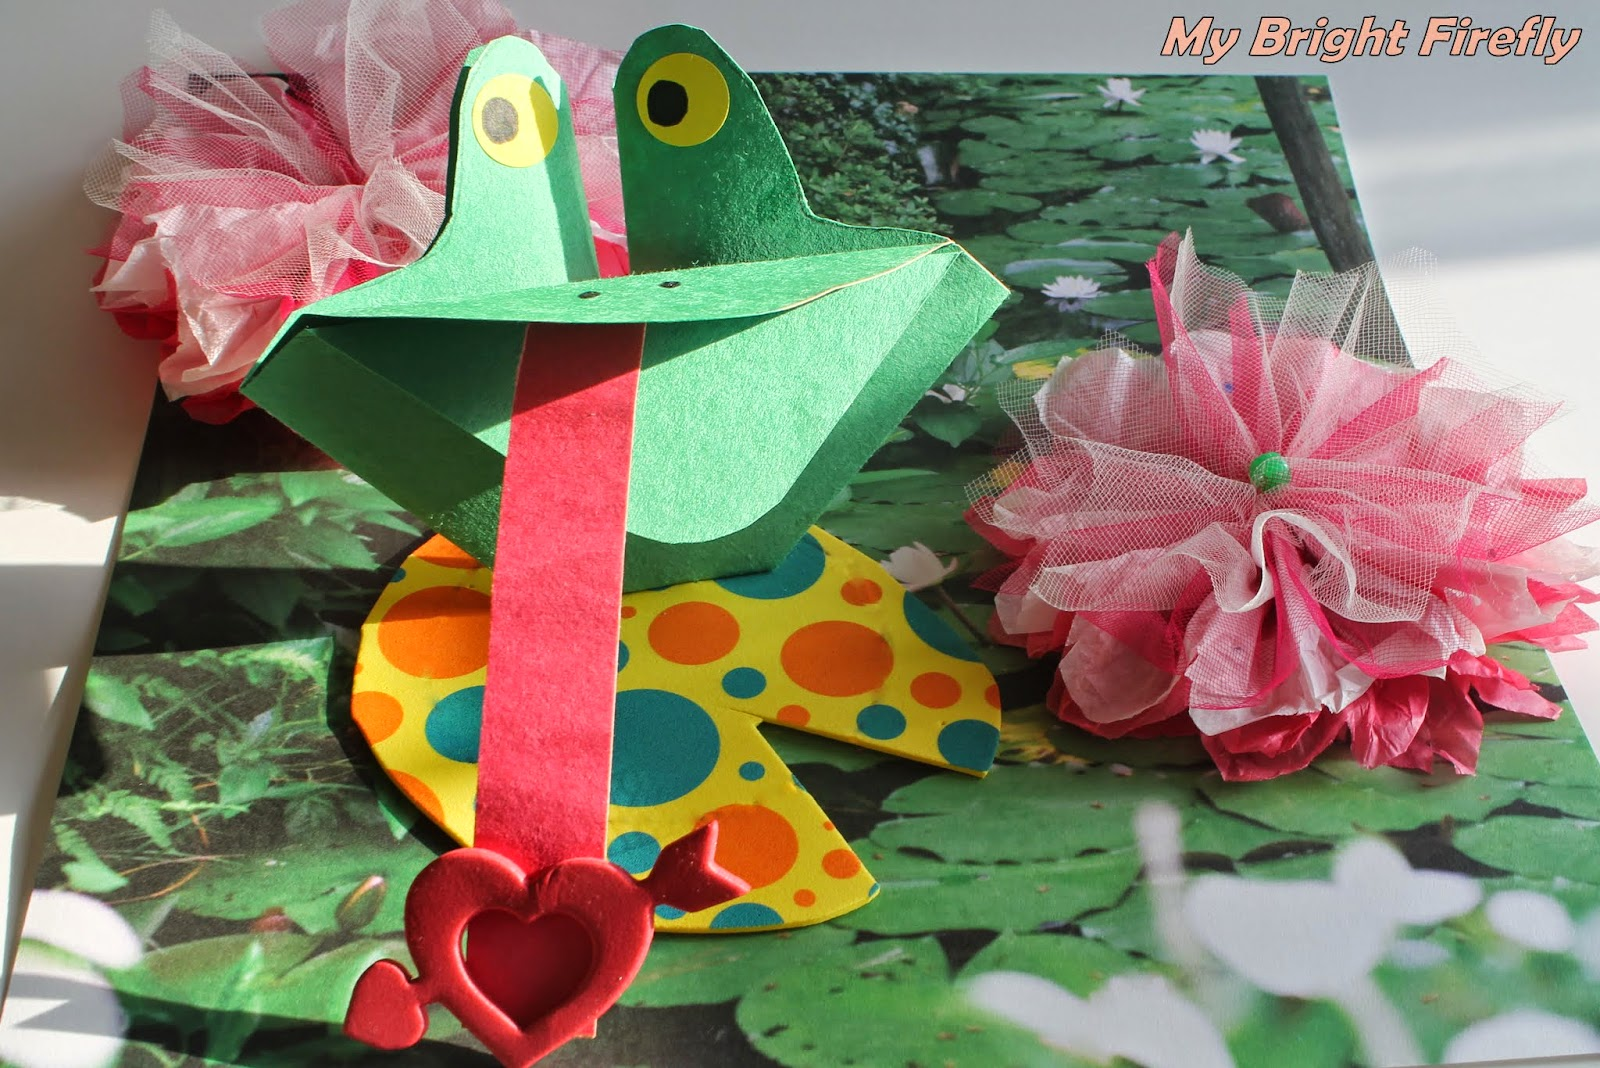 My Bright Firefly: Hoppy Father's Day Frog on a Lily Pad ... - photo#31